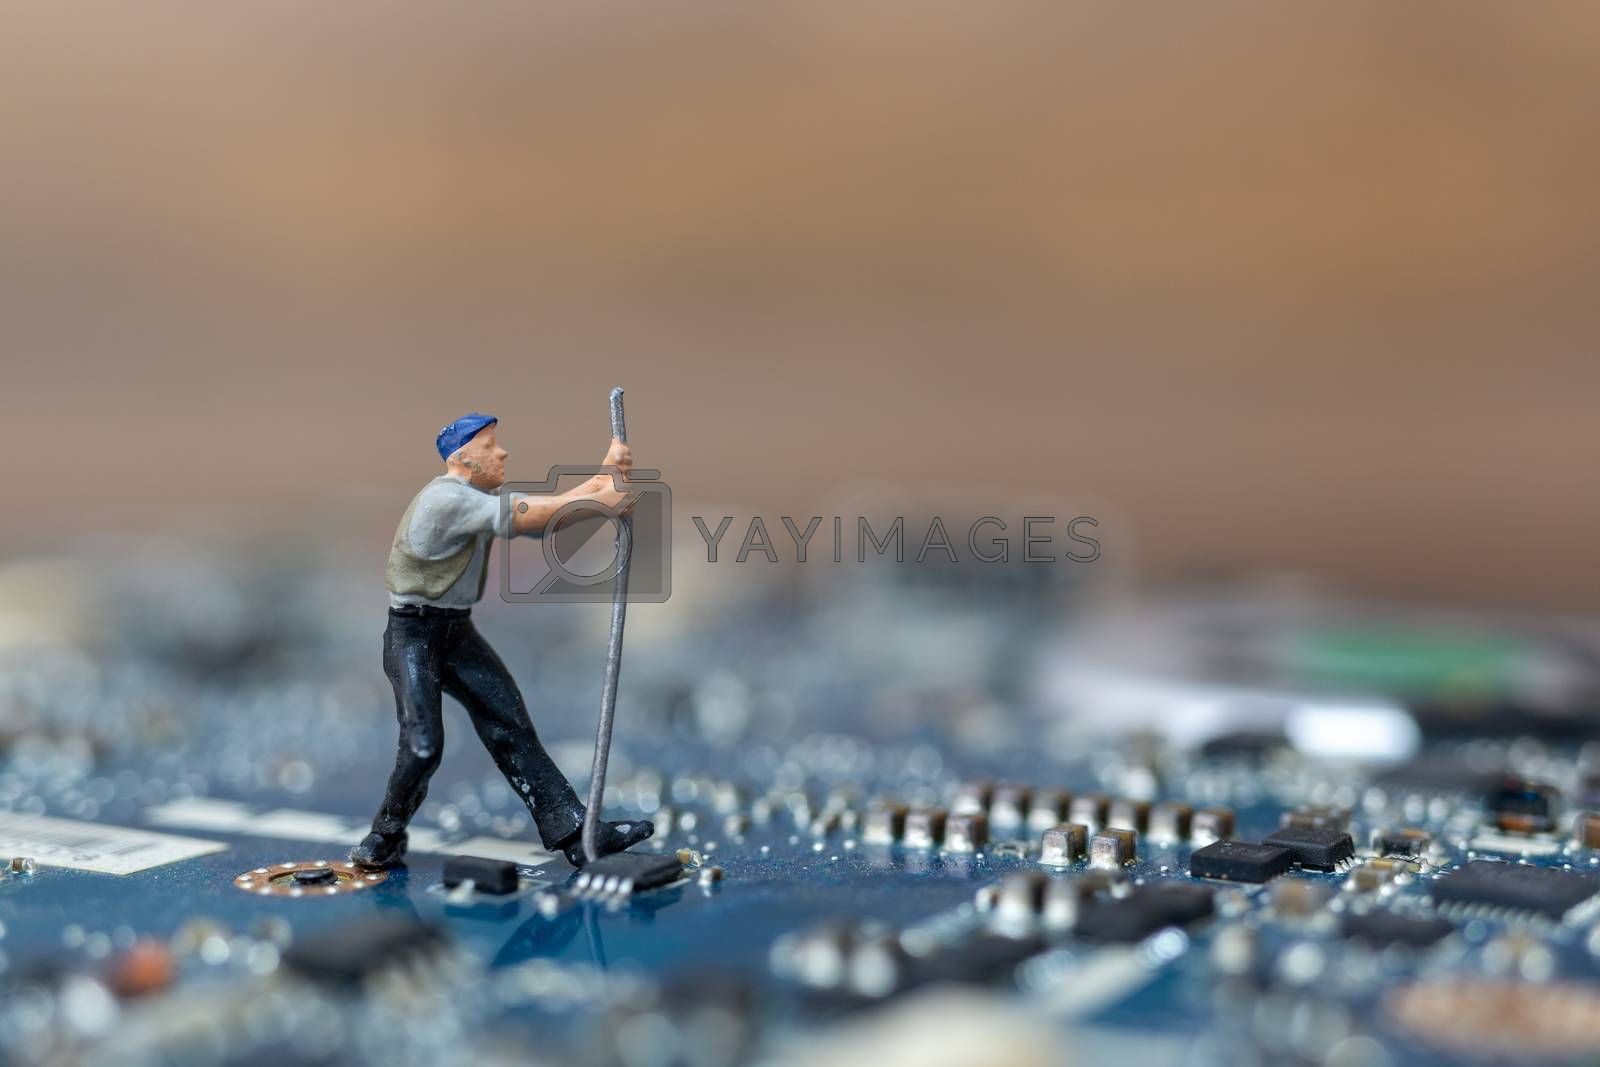 Miniature people working on cpu board, Technology concept